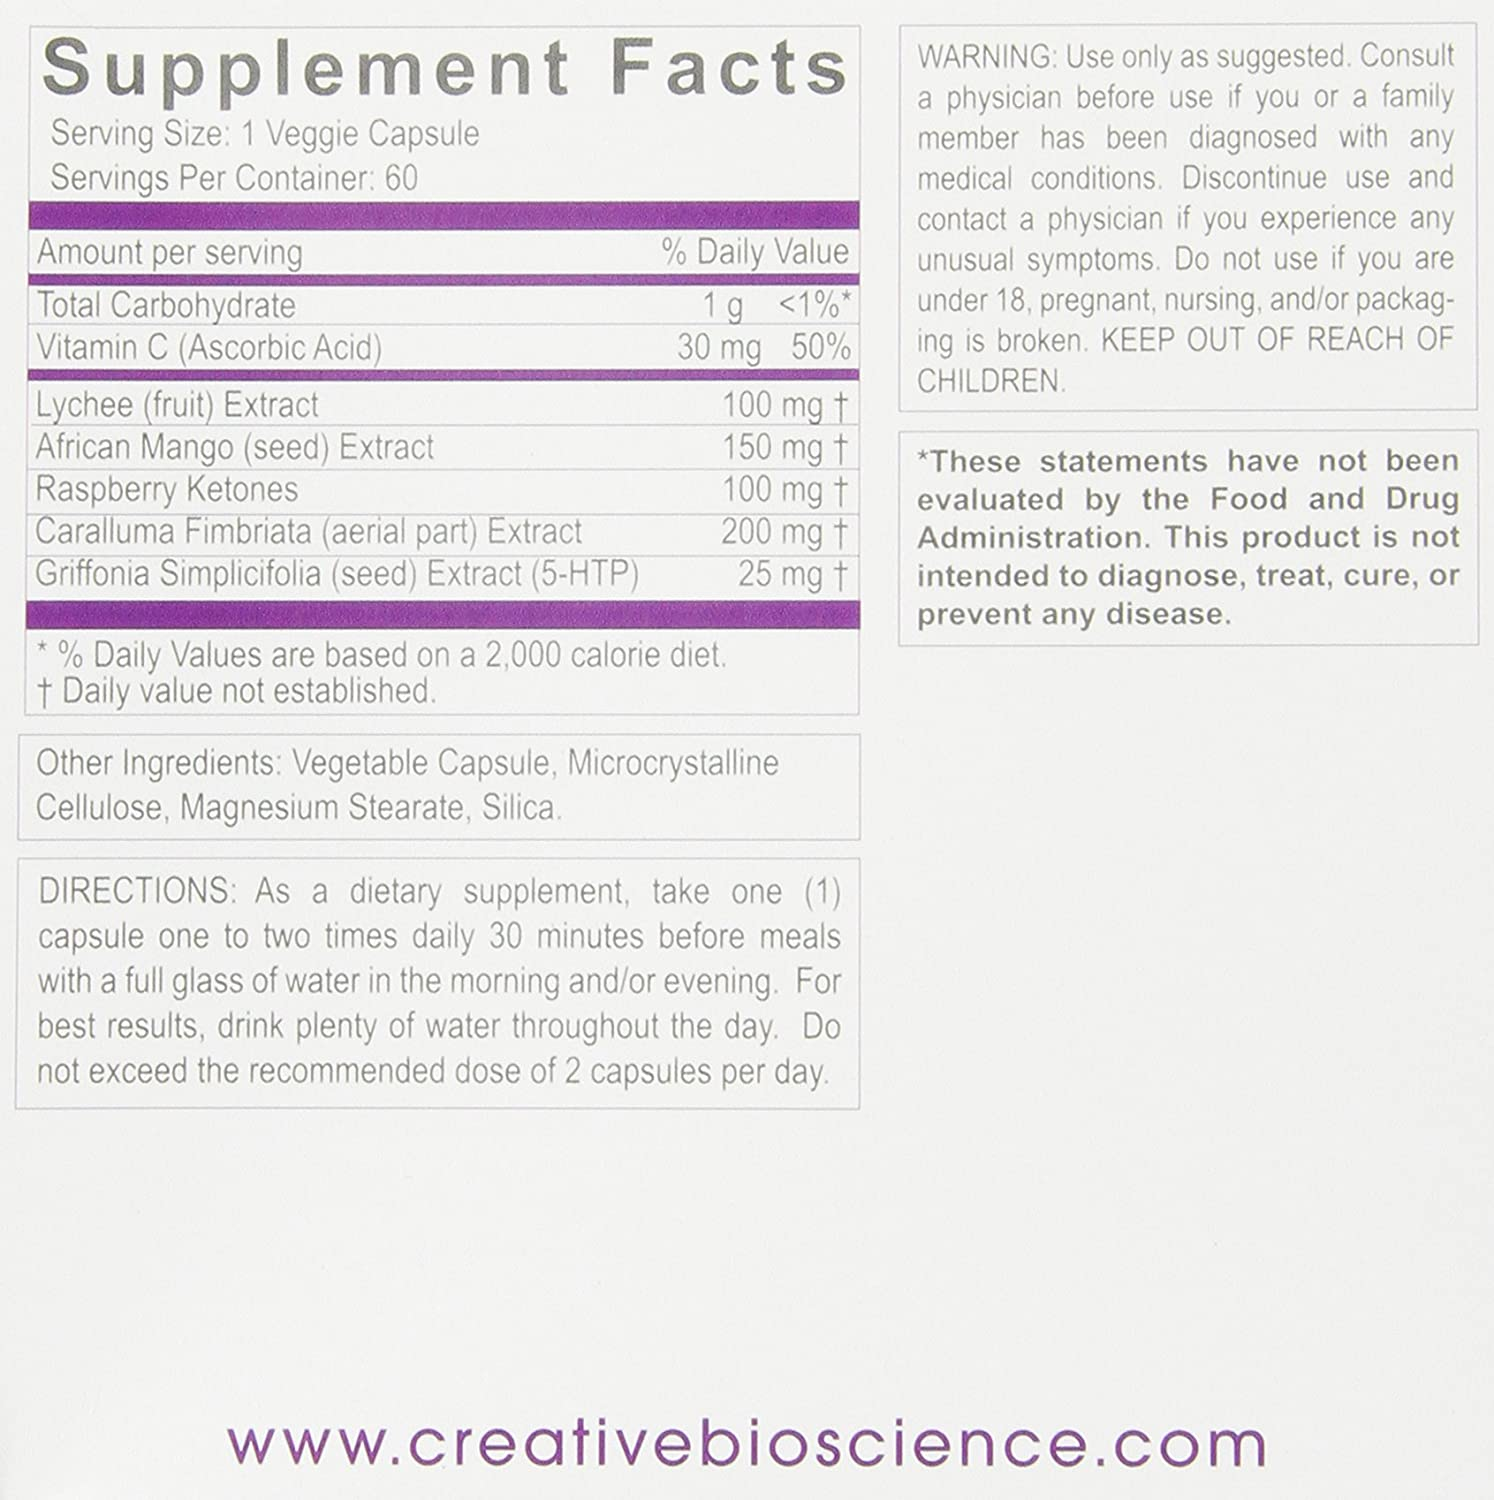 Amazon.com: Creative Bioscience Reduce Raspberry Ketones5-HTP,60 Veggie Capsules: Health & Personal Care